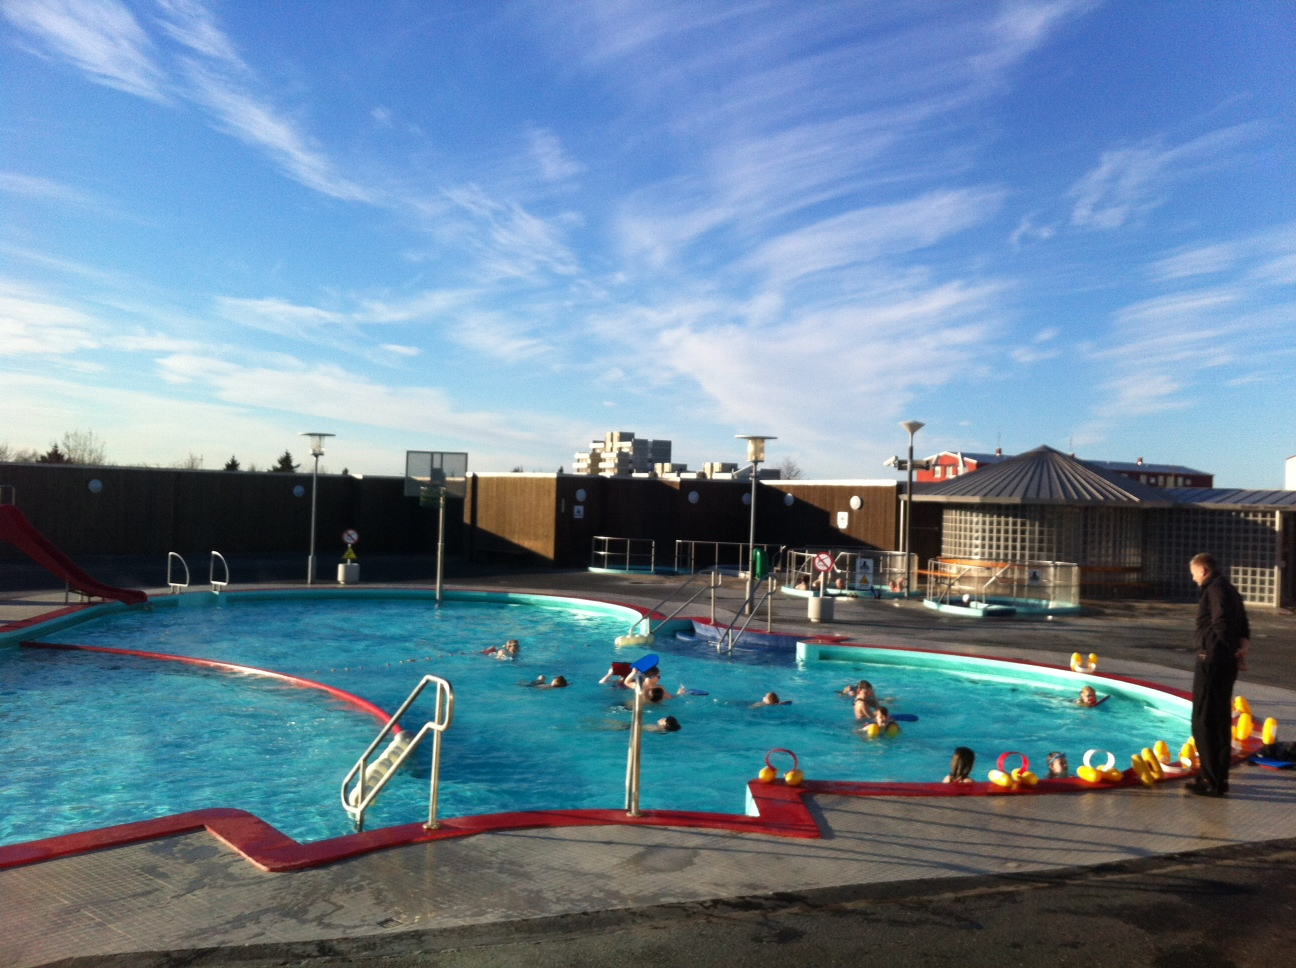 Swimmingpool Ozon Top 7 Best Swimming Pools In Reykjavik Guide To Iceland